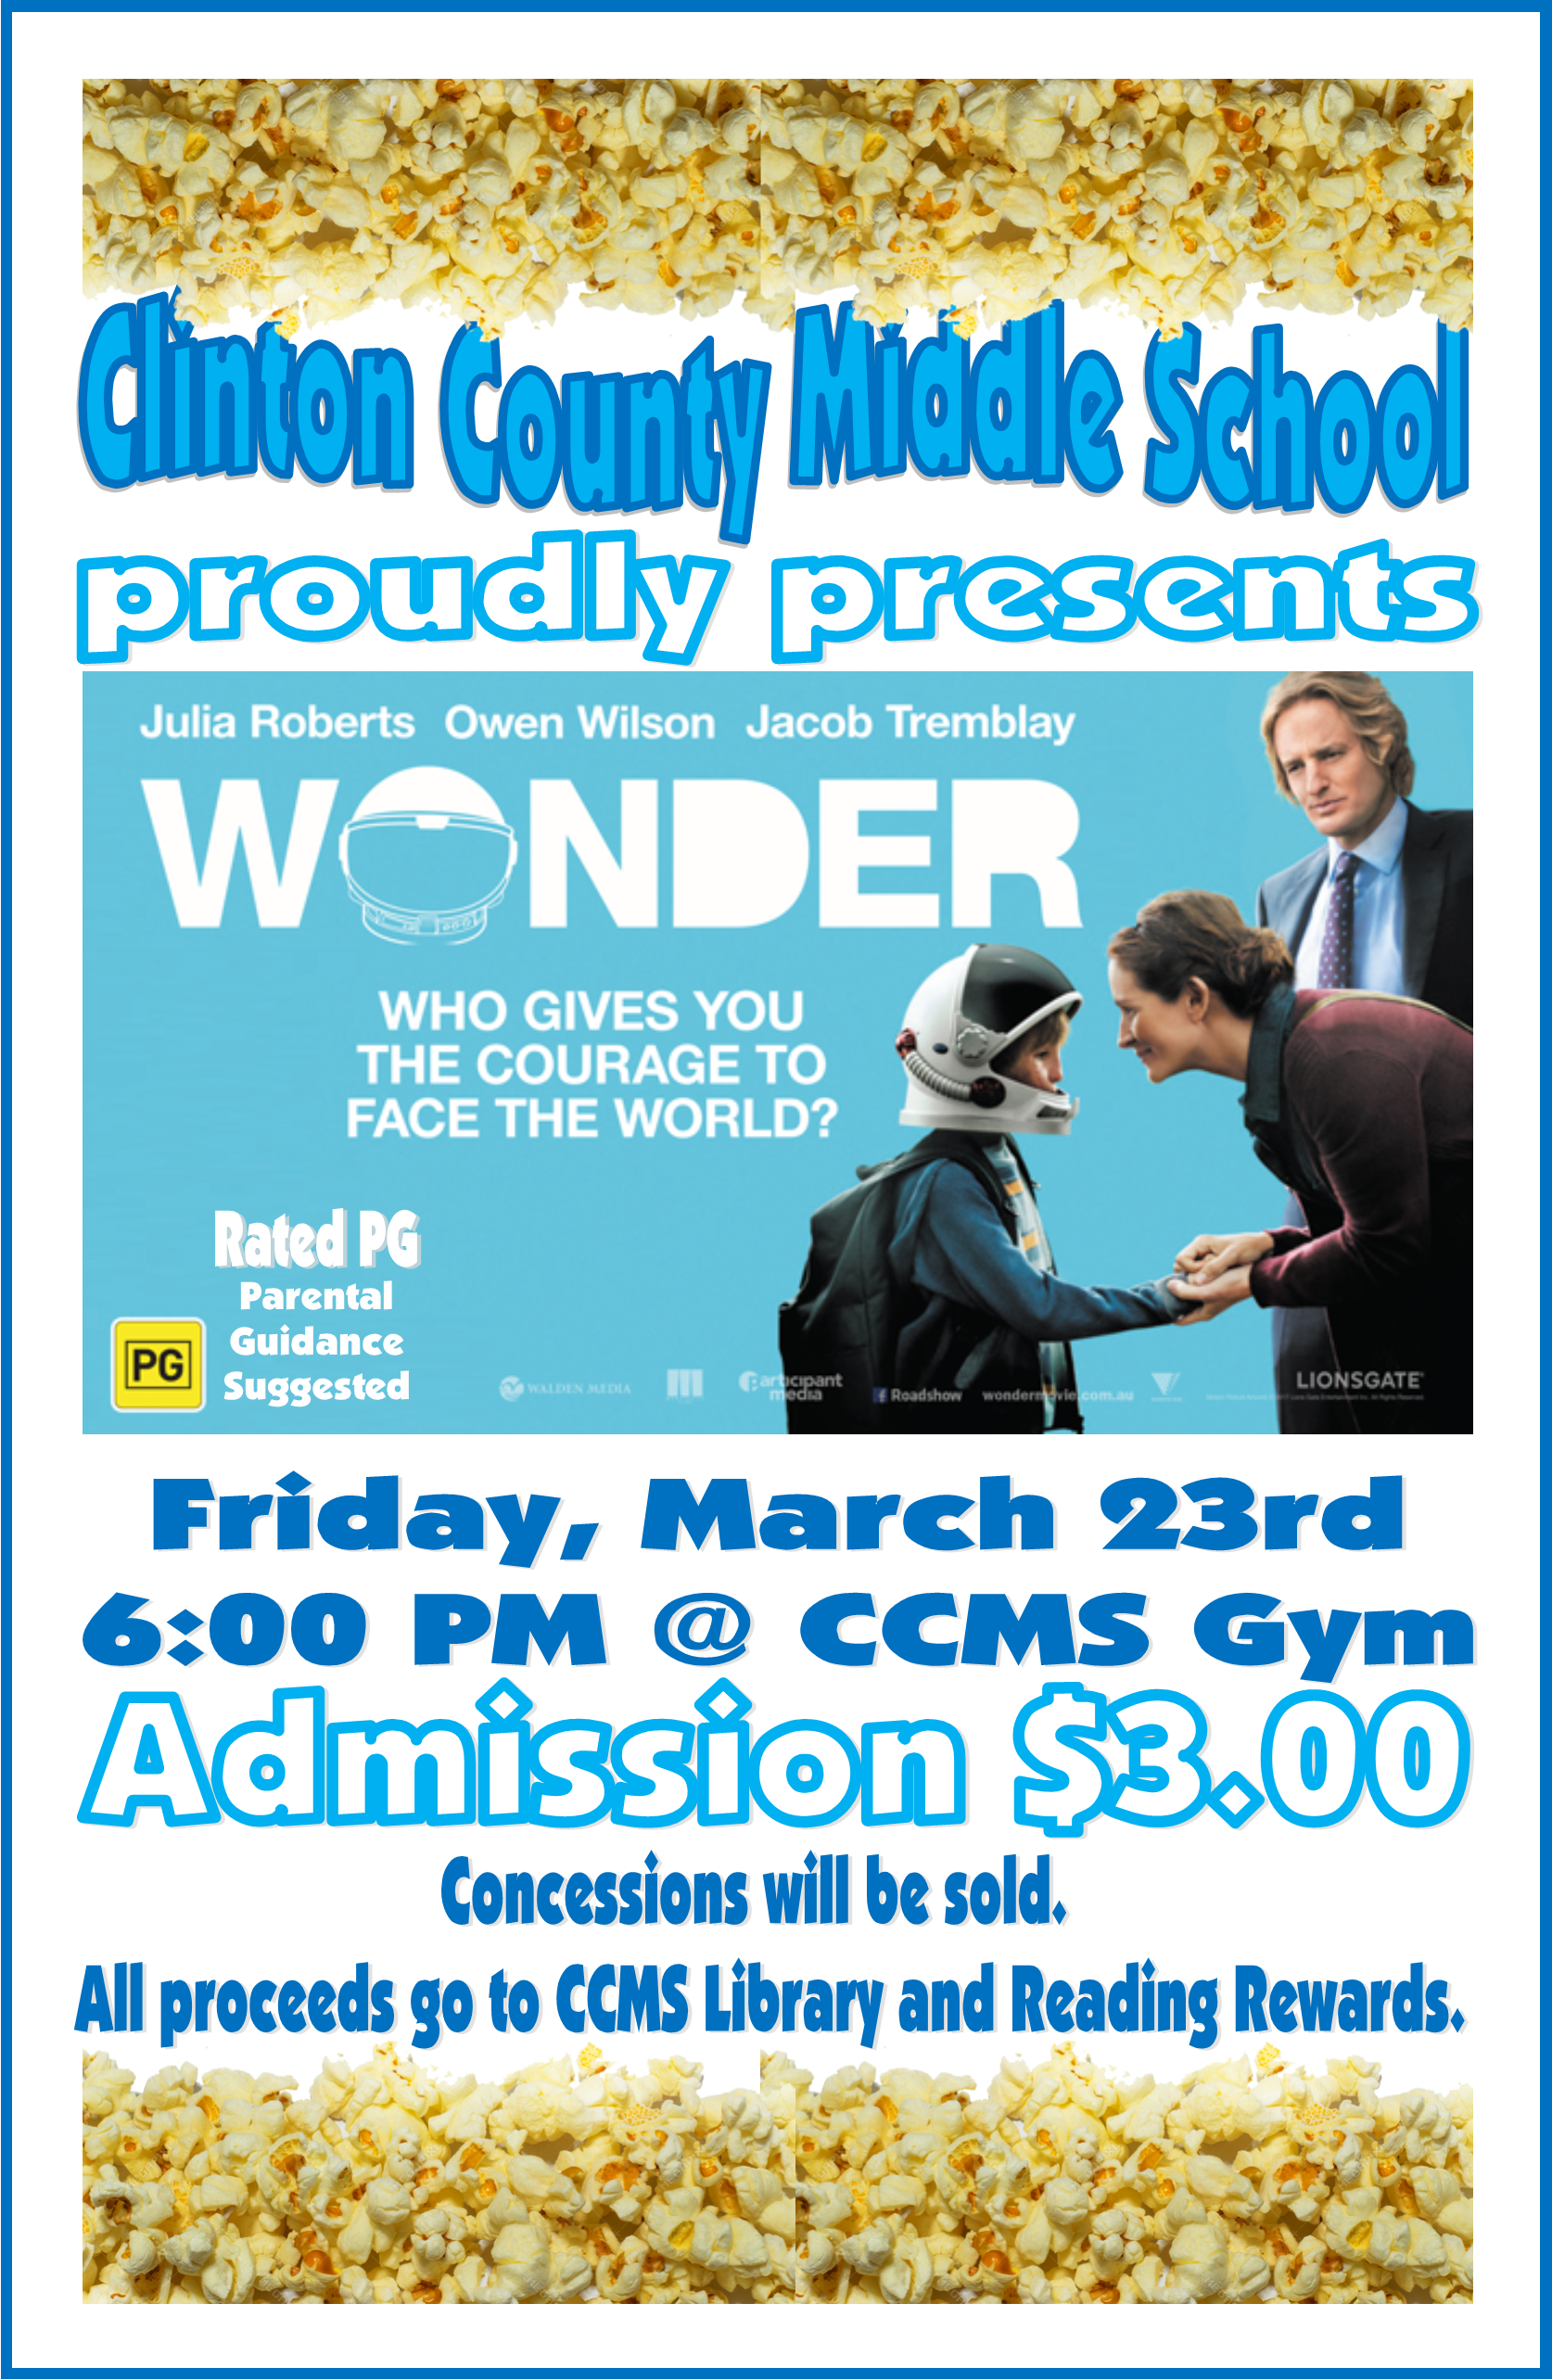 Clinton County Middle School Movie Night on Friday, March 23rd will feature WONDER!